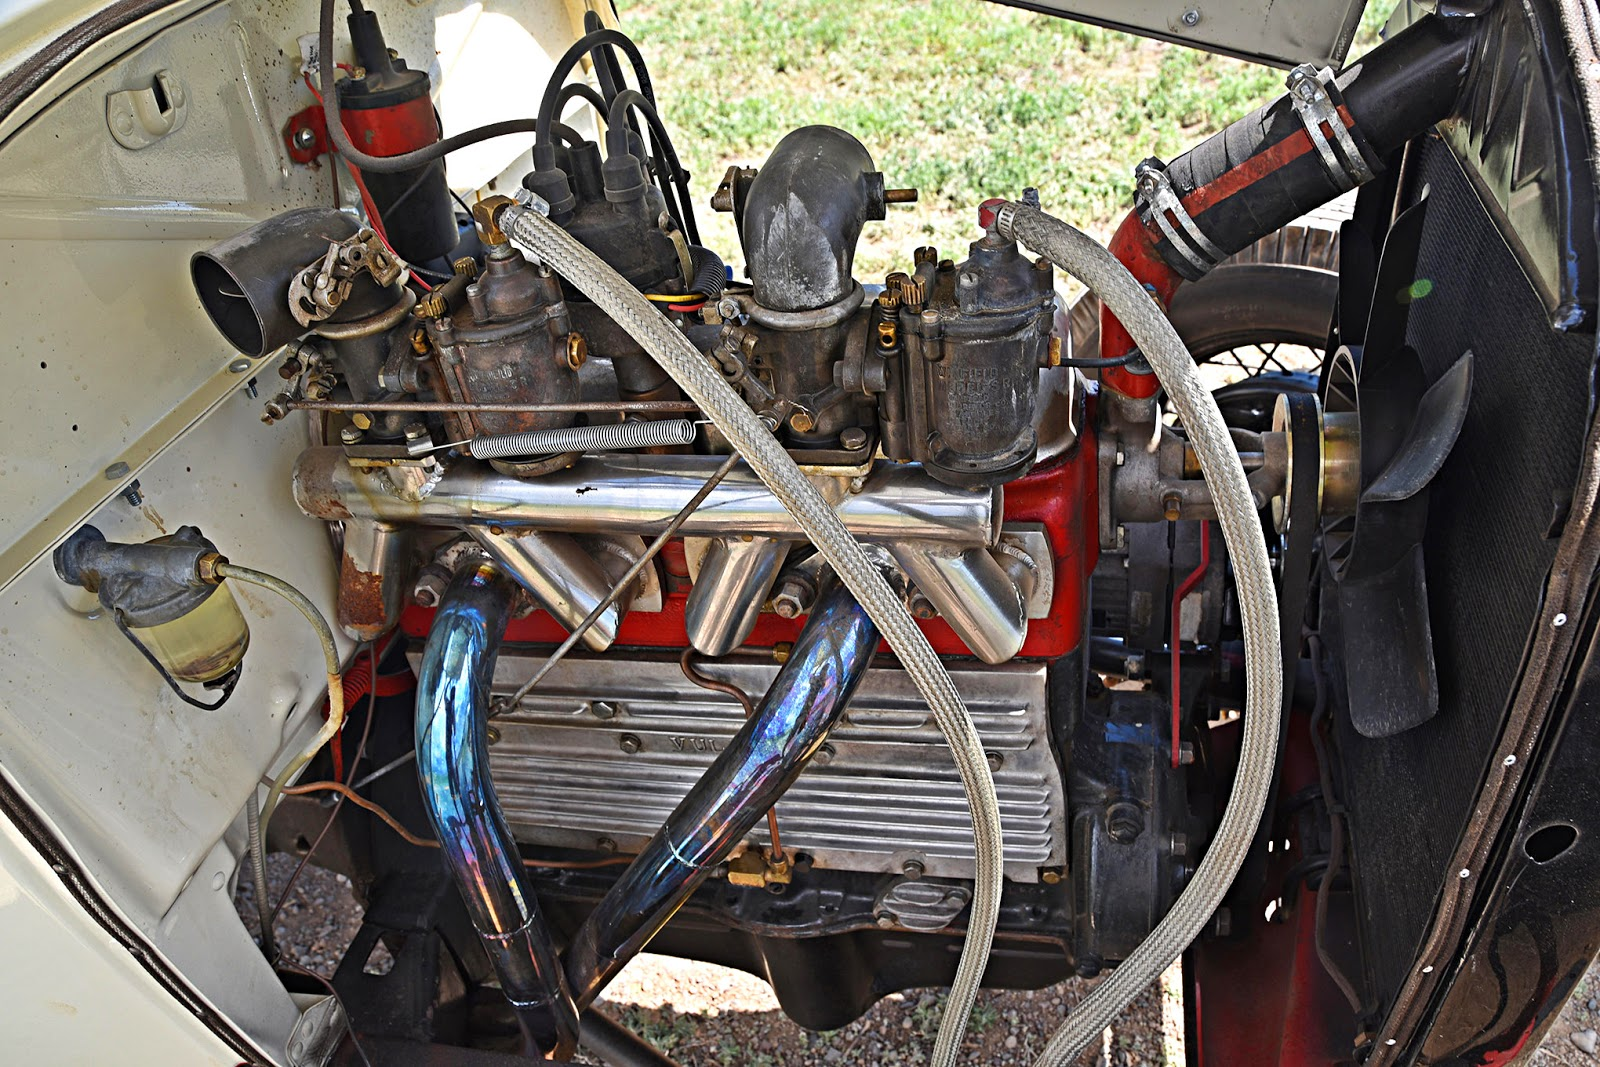 medium resolution of the reverse cam system gives the banger four intakes and two exhausts instead of vice versa kenz even handbuilt the manifold on this motor